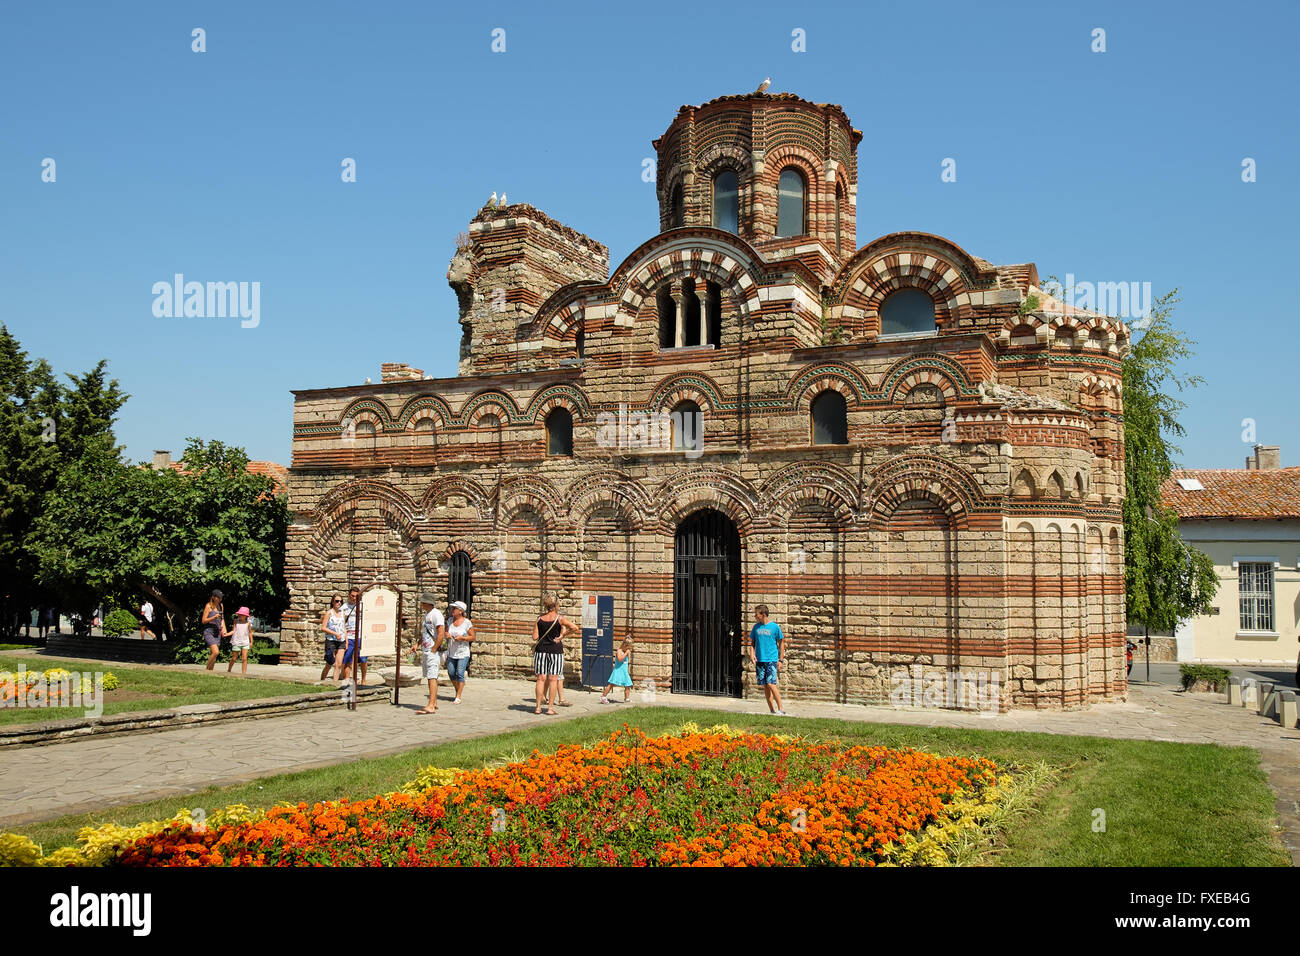 NESSEBAR, BULGARIA - JULY 18, 2015: The Church of Christ Pantocrator in old town of Nessebar, Bulgaria - Stock Image